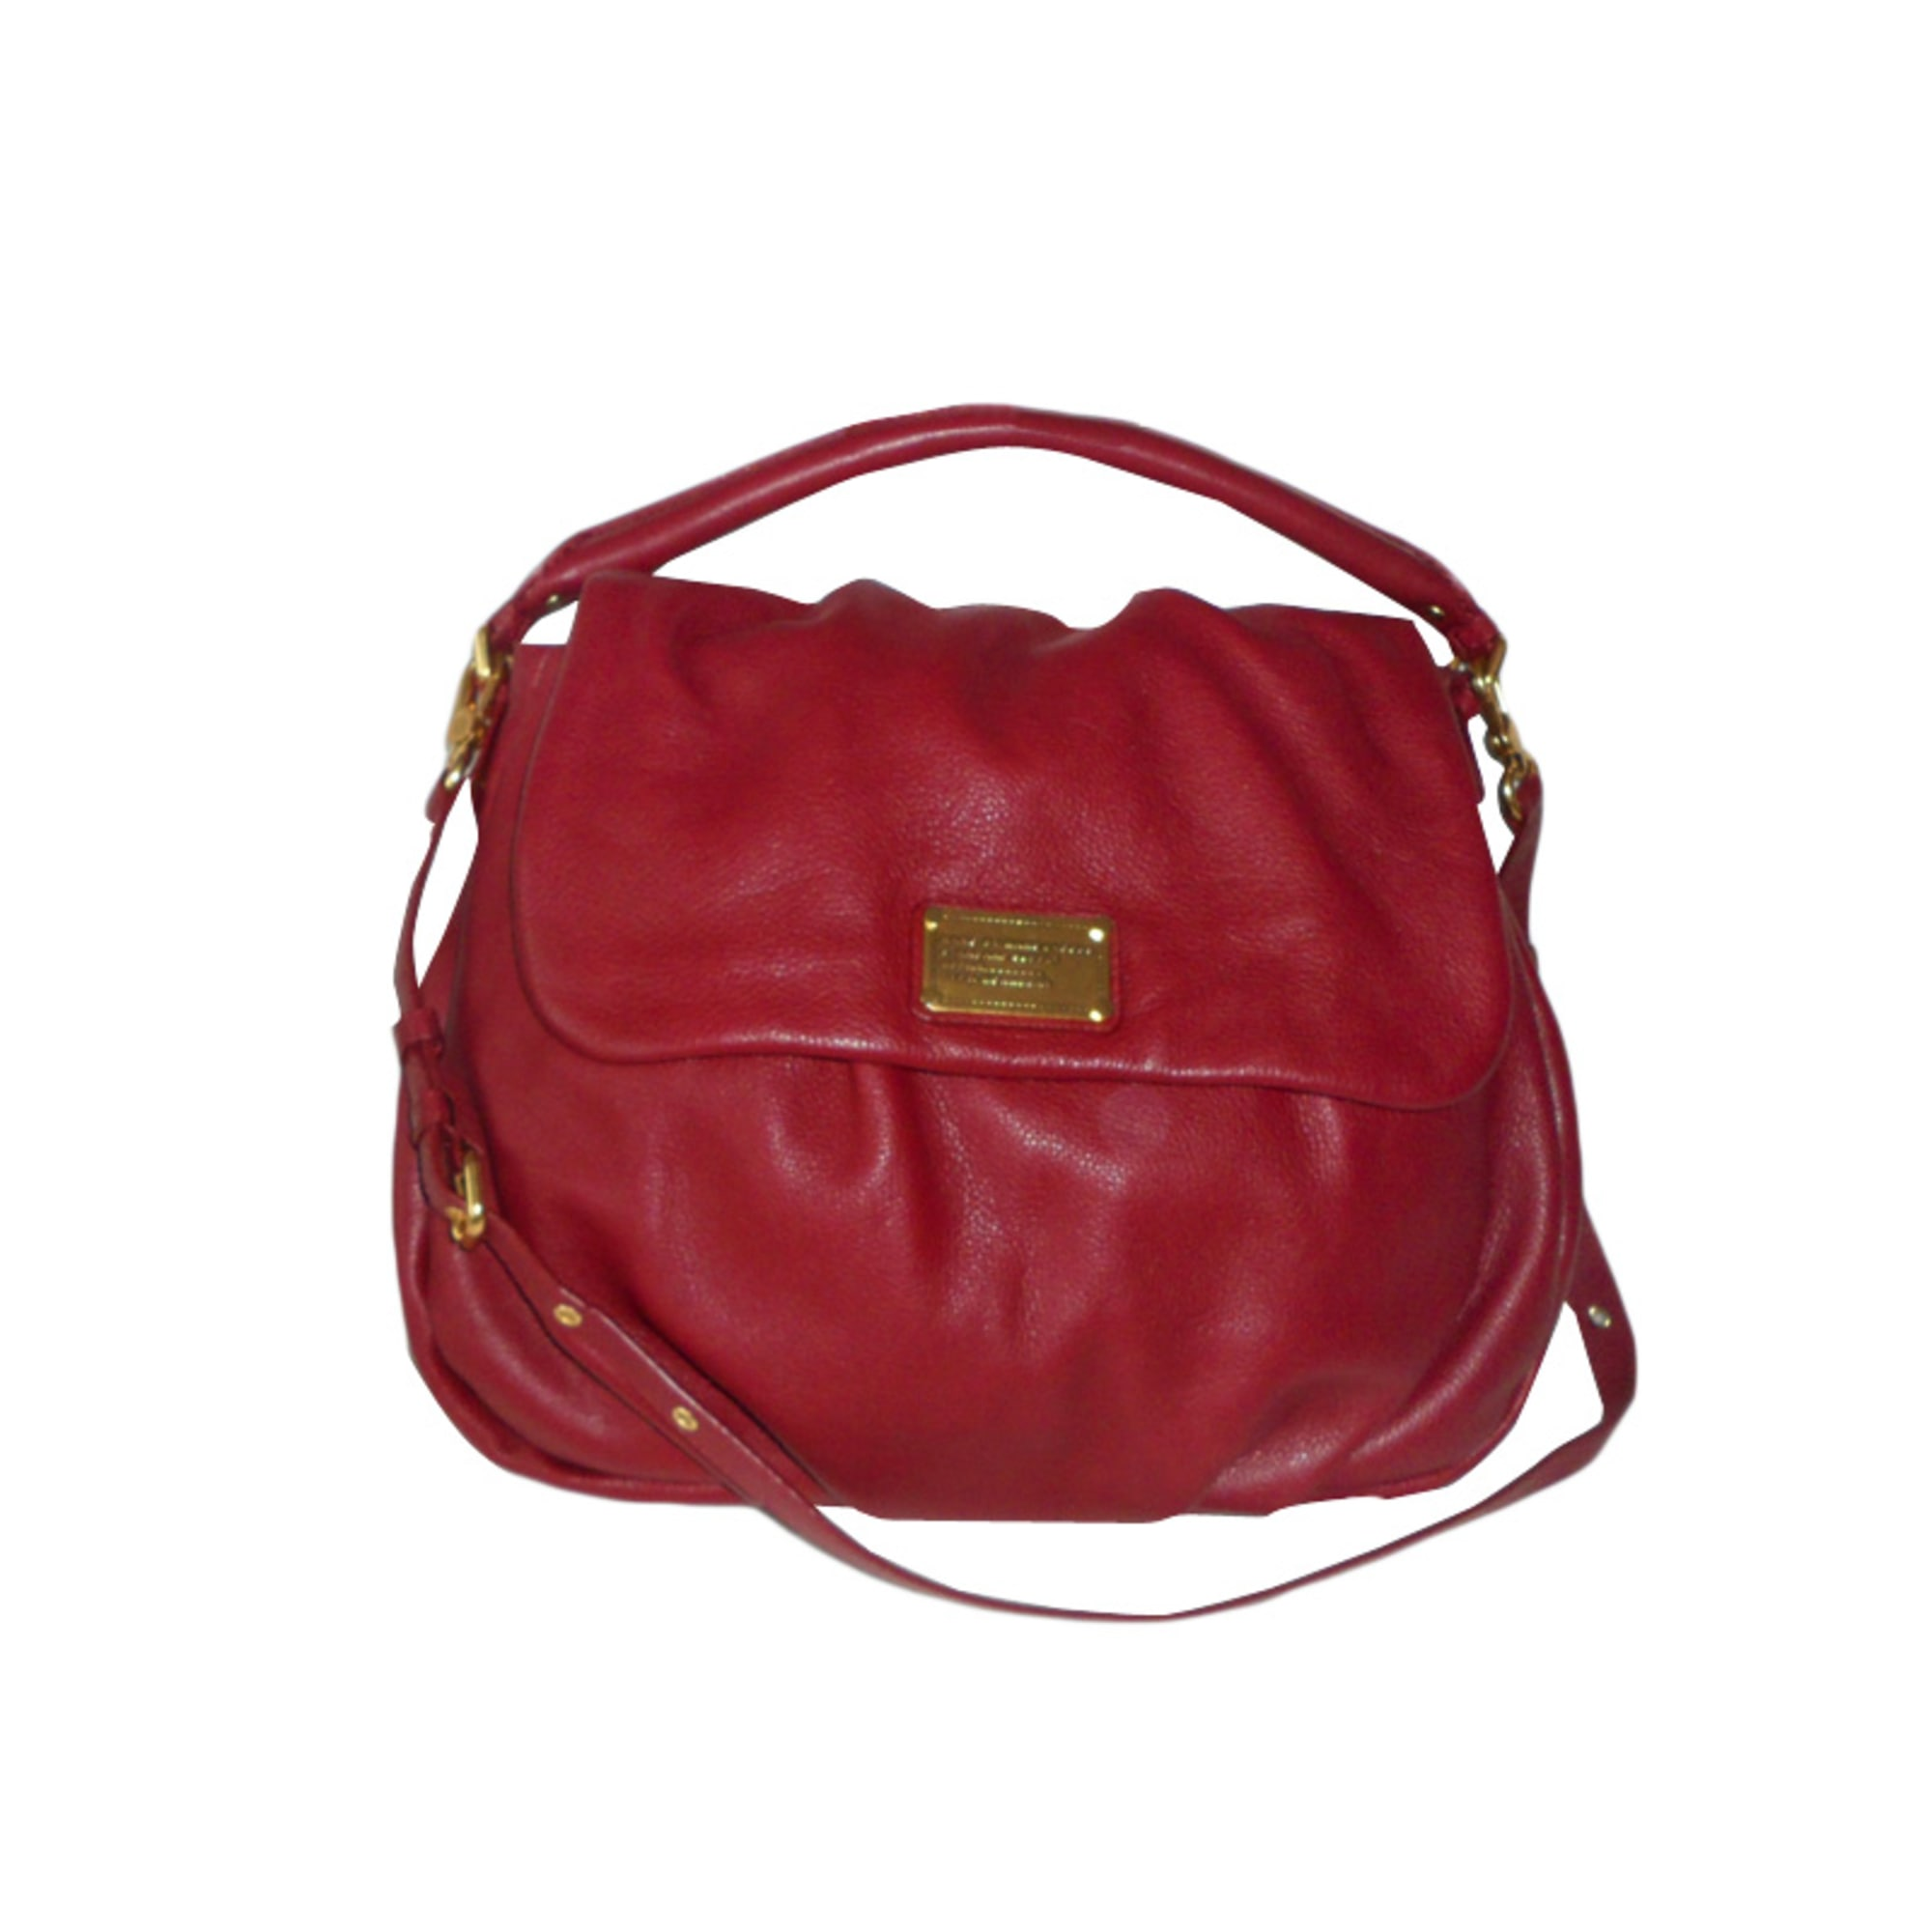 Sac à main en cuir MARC JACOBS rouge vendu par So vpc75765 - 674112 0e0664160d72